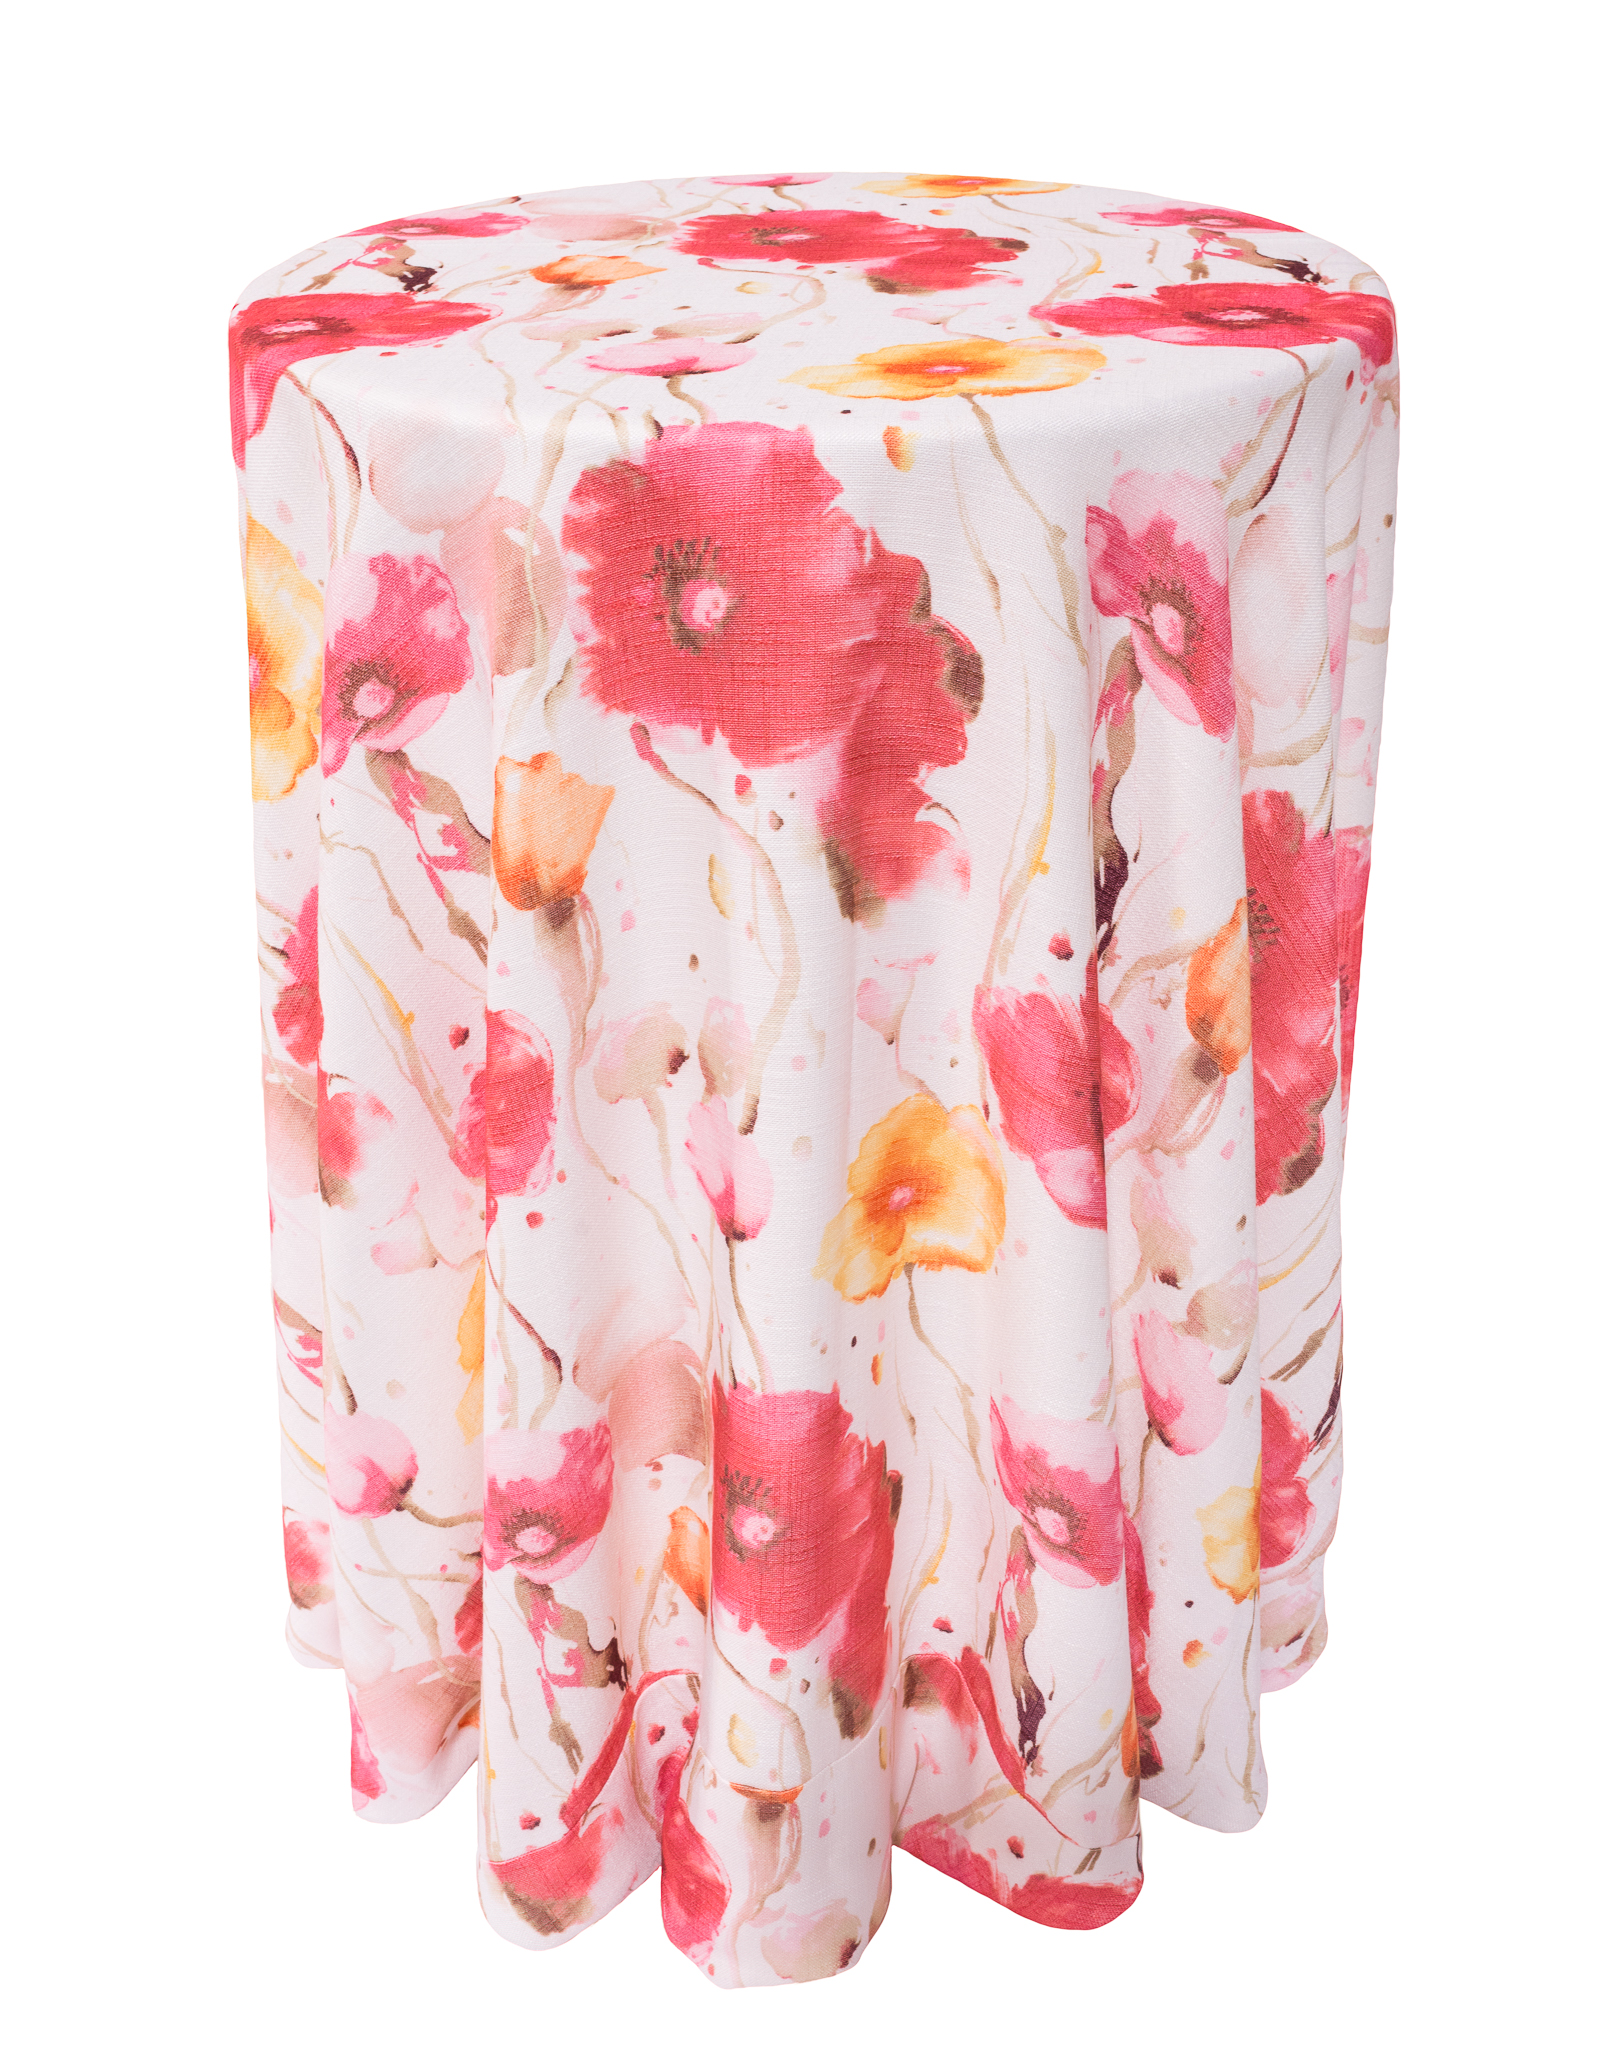 Monet Table Linen, Pink Floral Table Cloth